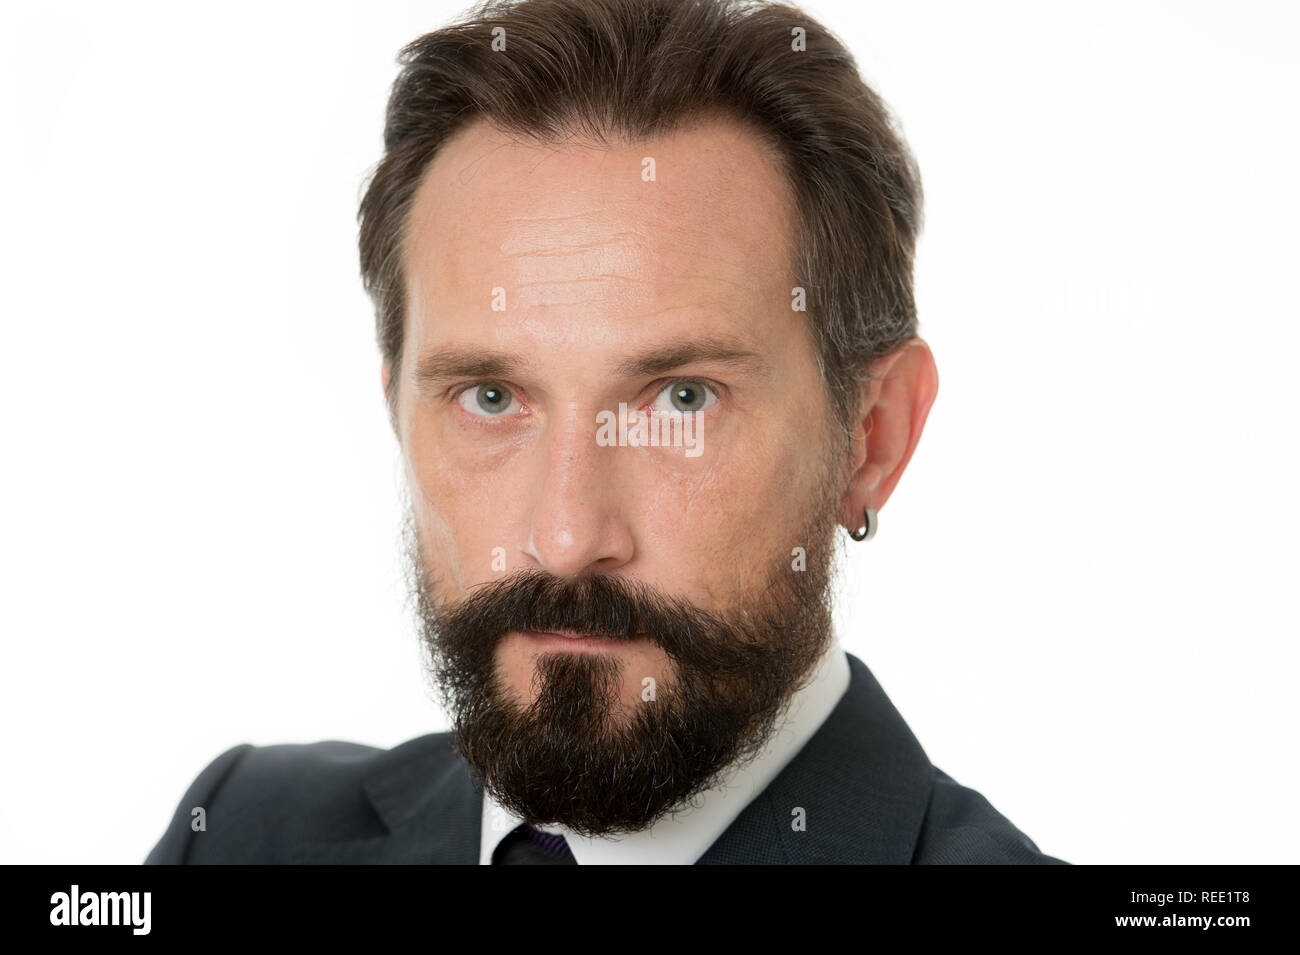 Glance radiant confidence. Businessman classic formal clothing made decision. Business behaviour must be confident. Businessman success tips. Man with beard and mustache looks serious close up. - Stock Image